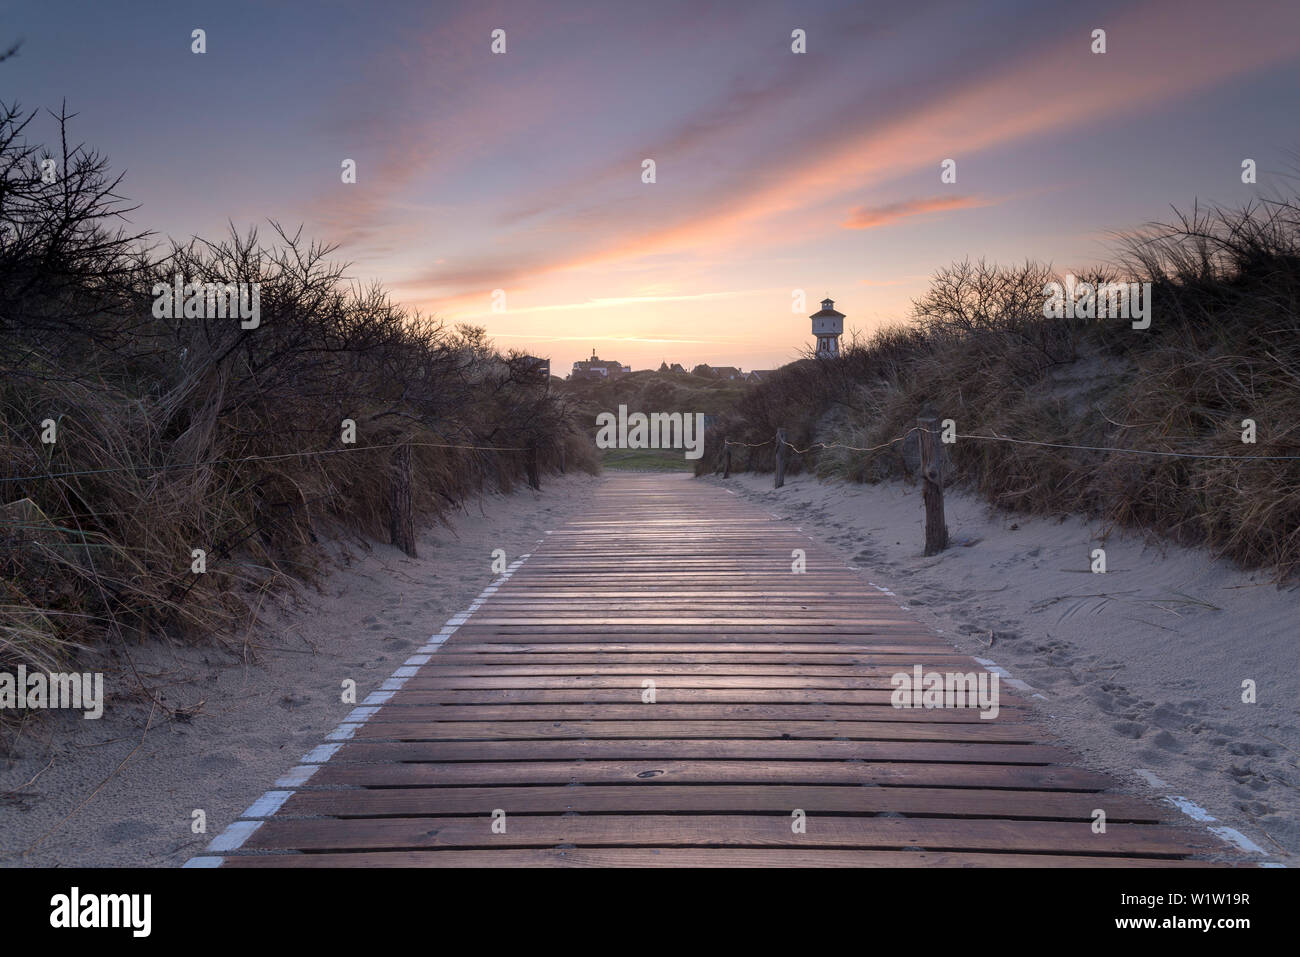 Footpath, Dune, Sunrise, Dawn, Water Tower, Langeoog, North Sea, East Frisian Islands, East Frisia, Lower Saxony, Germany, Europe Stock Photo